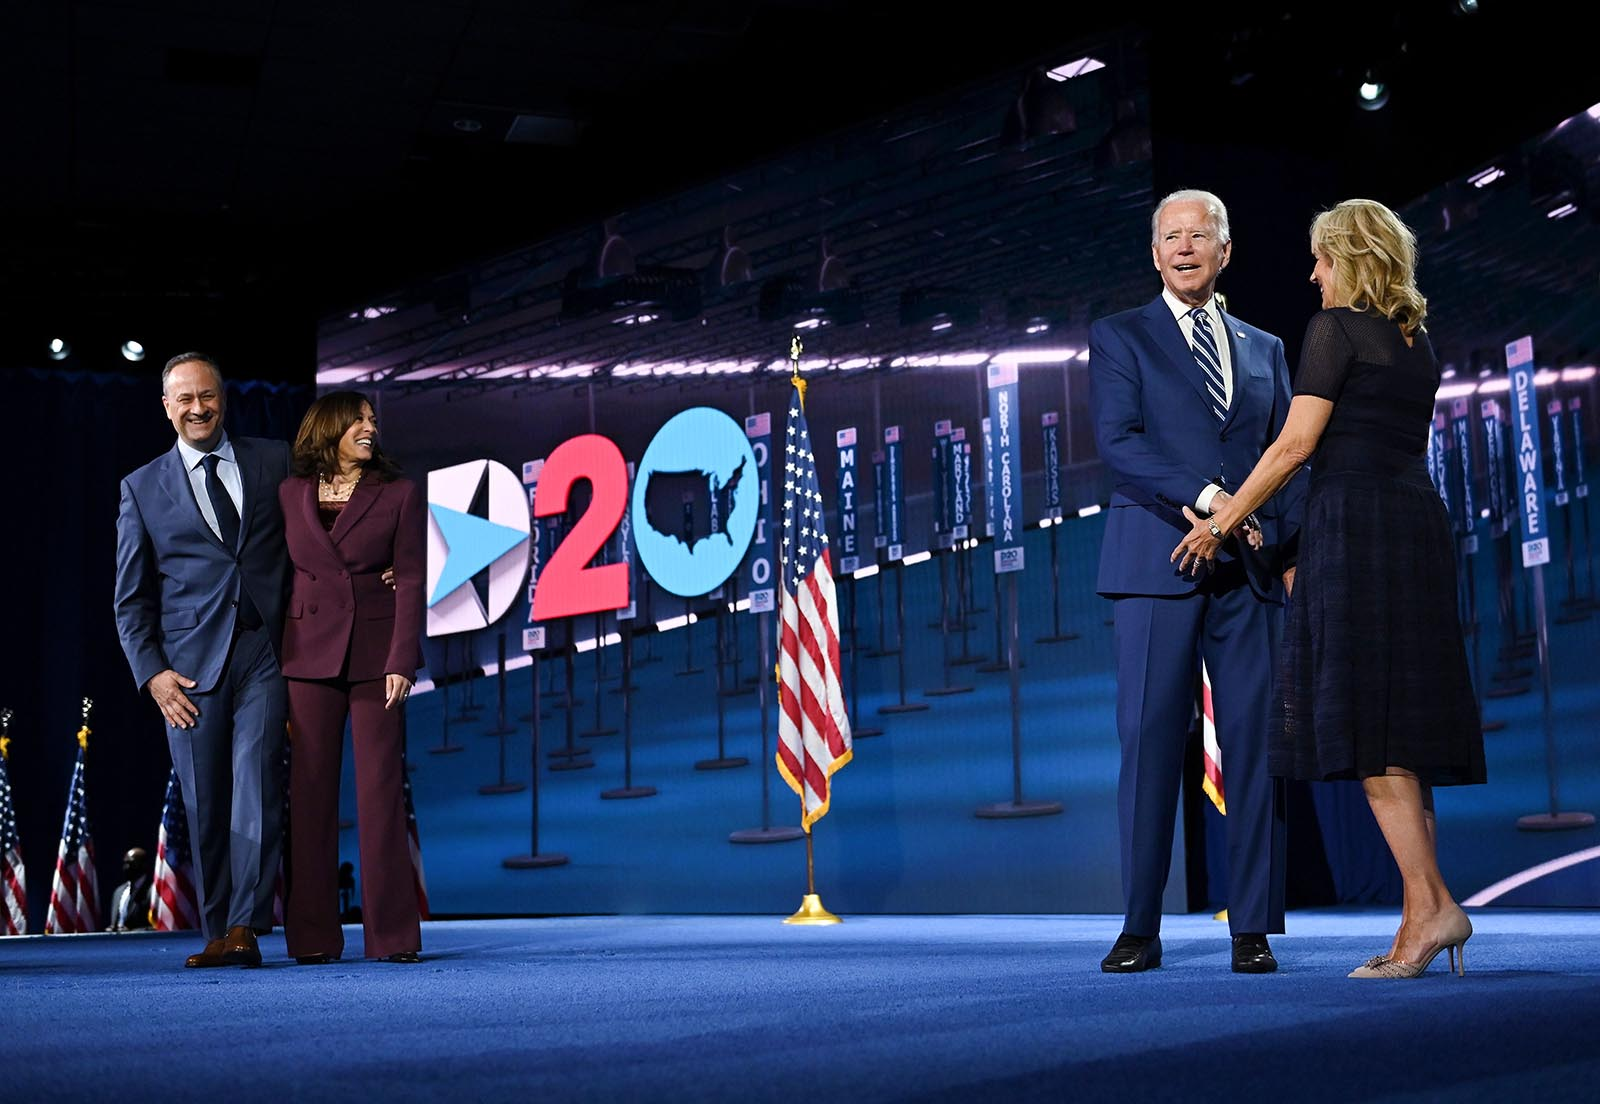 Senator from California and Democratic vice presidential nominee Kamala Harris and her husband Douglas Emhoff stand on stage socially distanced from former Vice President and Democratic presidential nominee Joe Biden and his wife former Second Lady of the United States Dr. Jill Biden at the end of the third day of the Democratic National Convention at the Chase Center in Wilmington, Delaware on August 19.